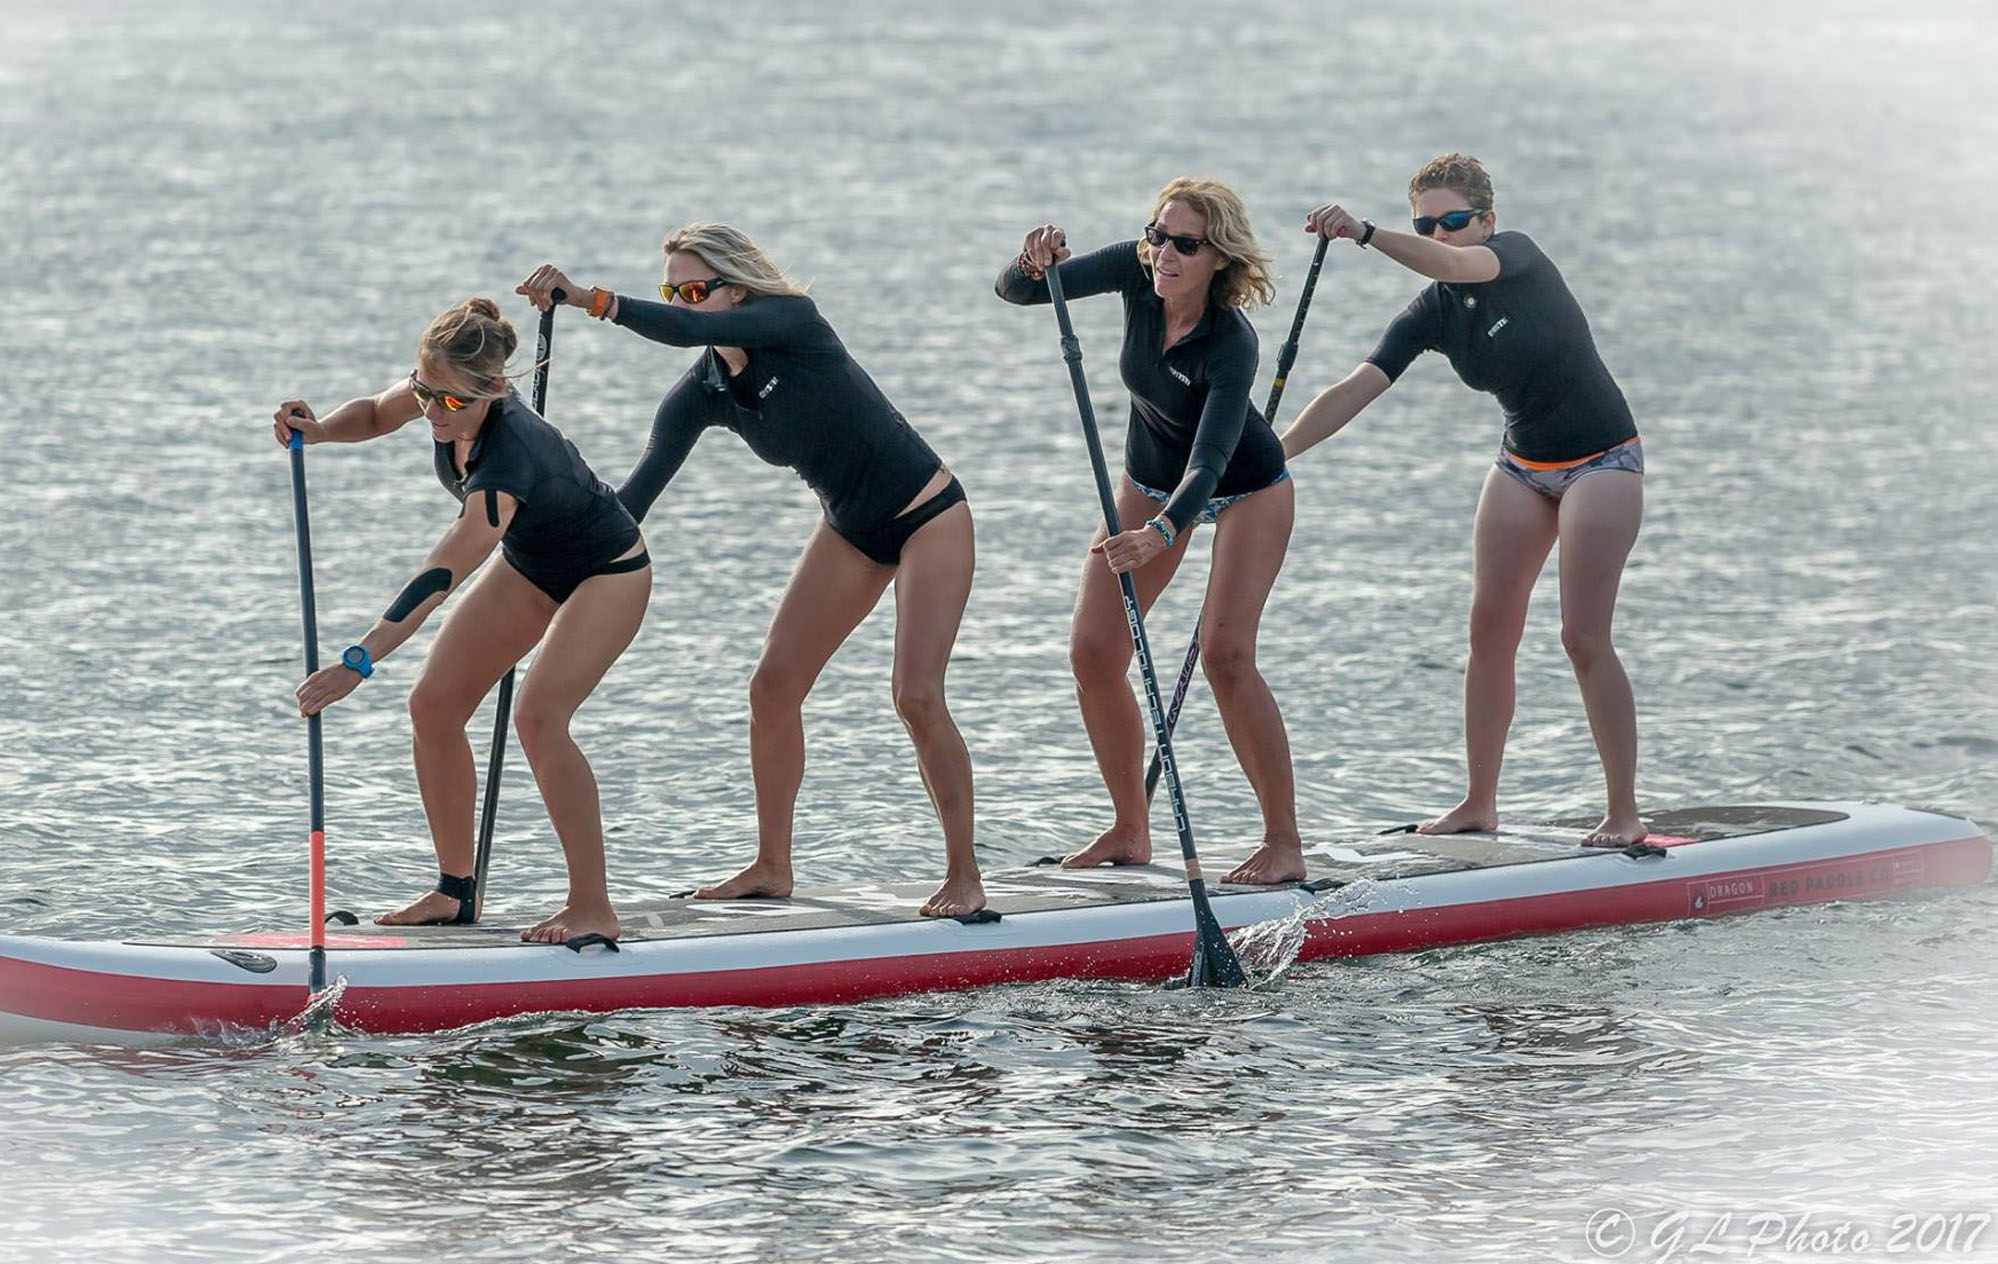 Dragon Angels paddle boarding